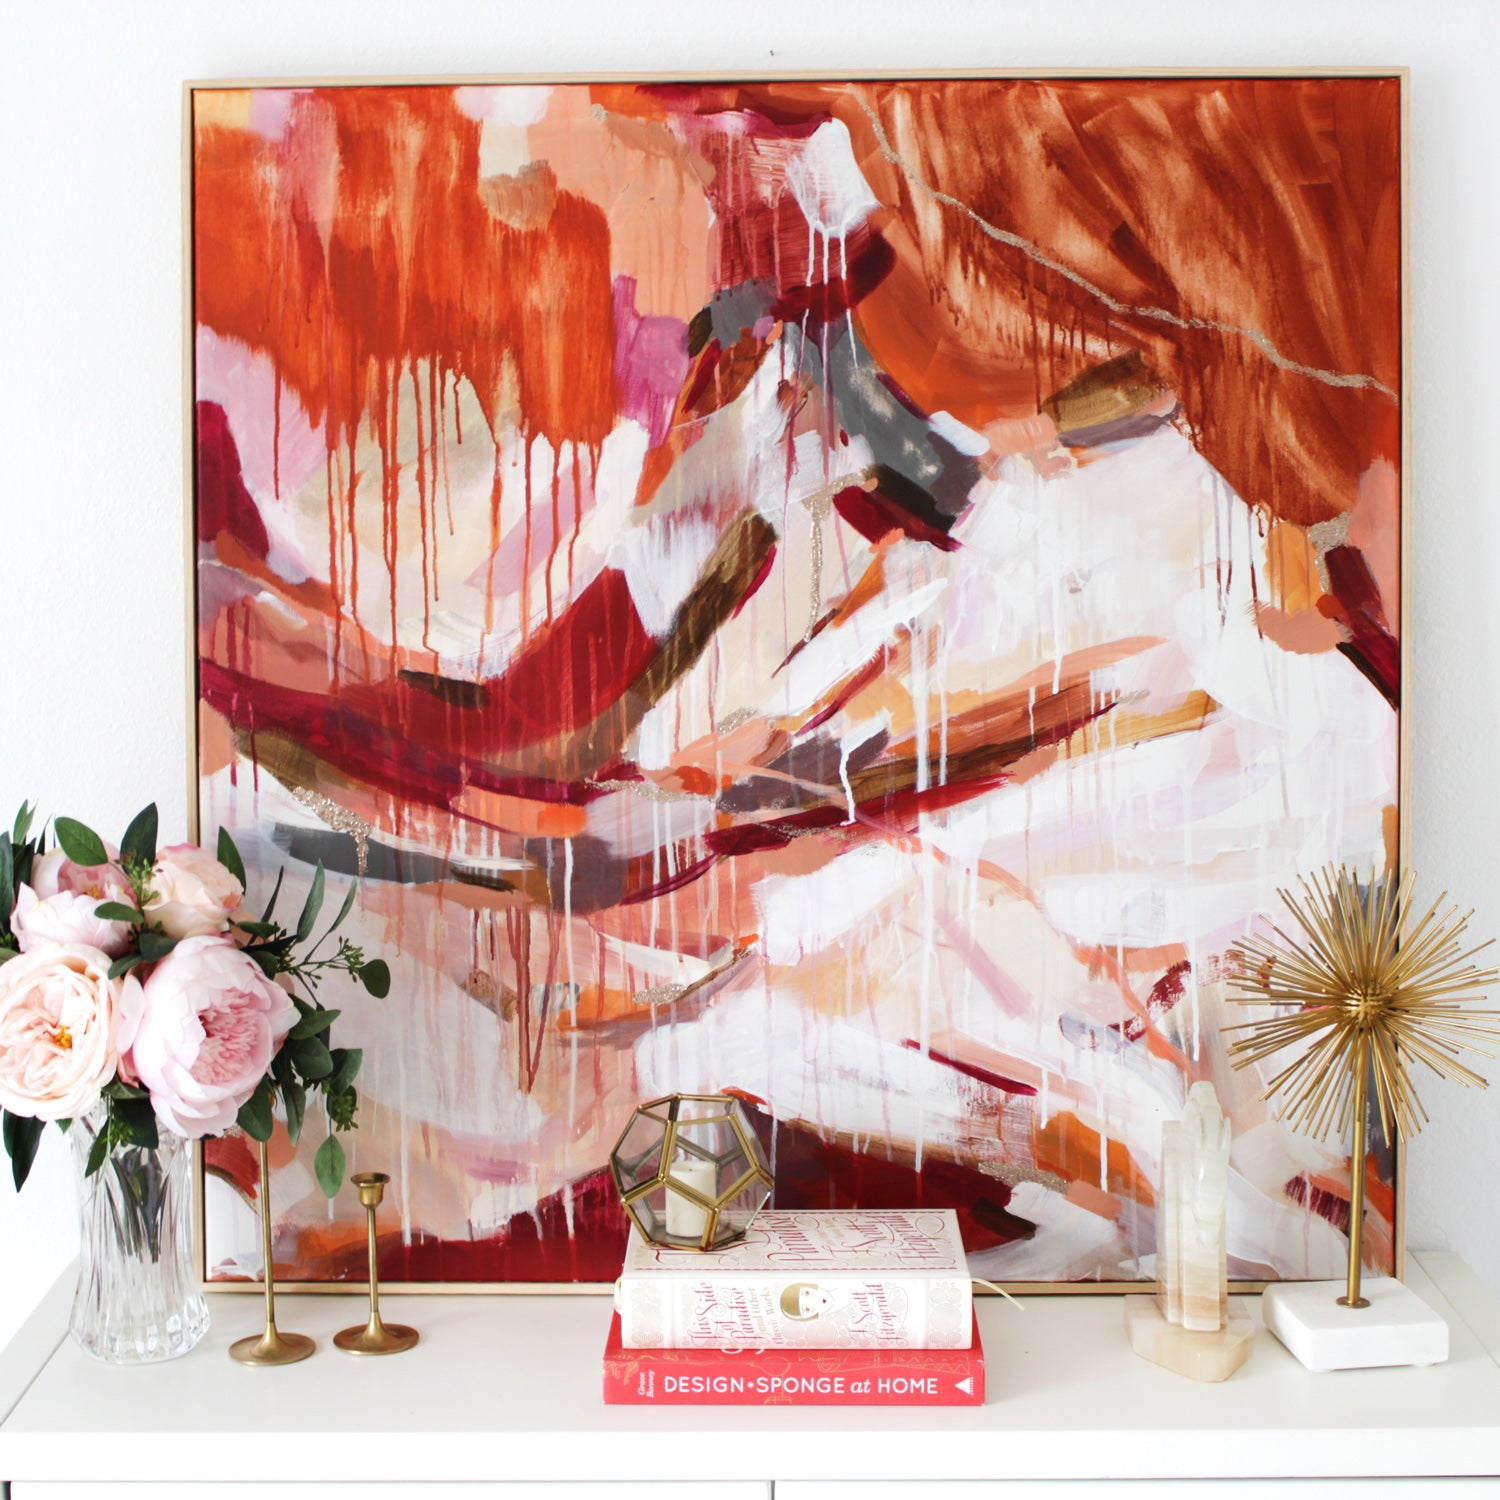 Abigail, large square abstract painting in living room via Parima Studio